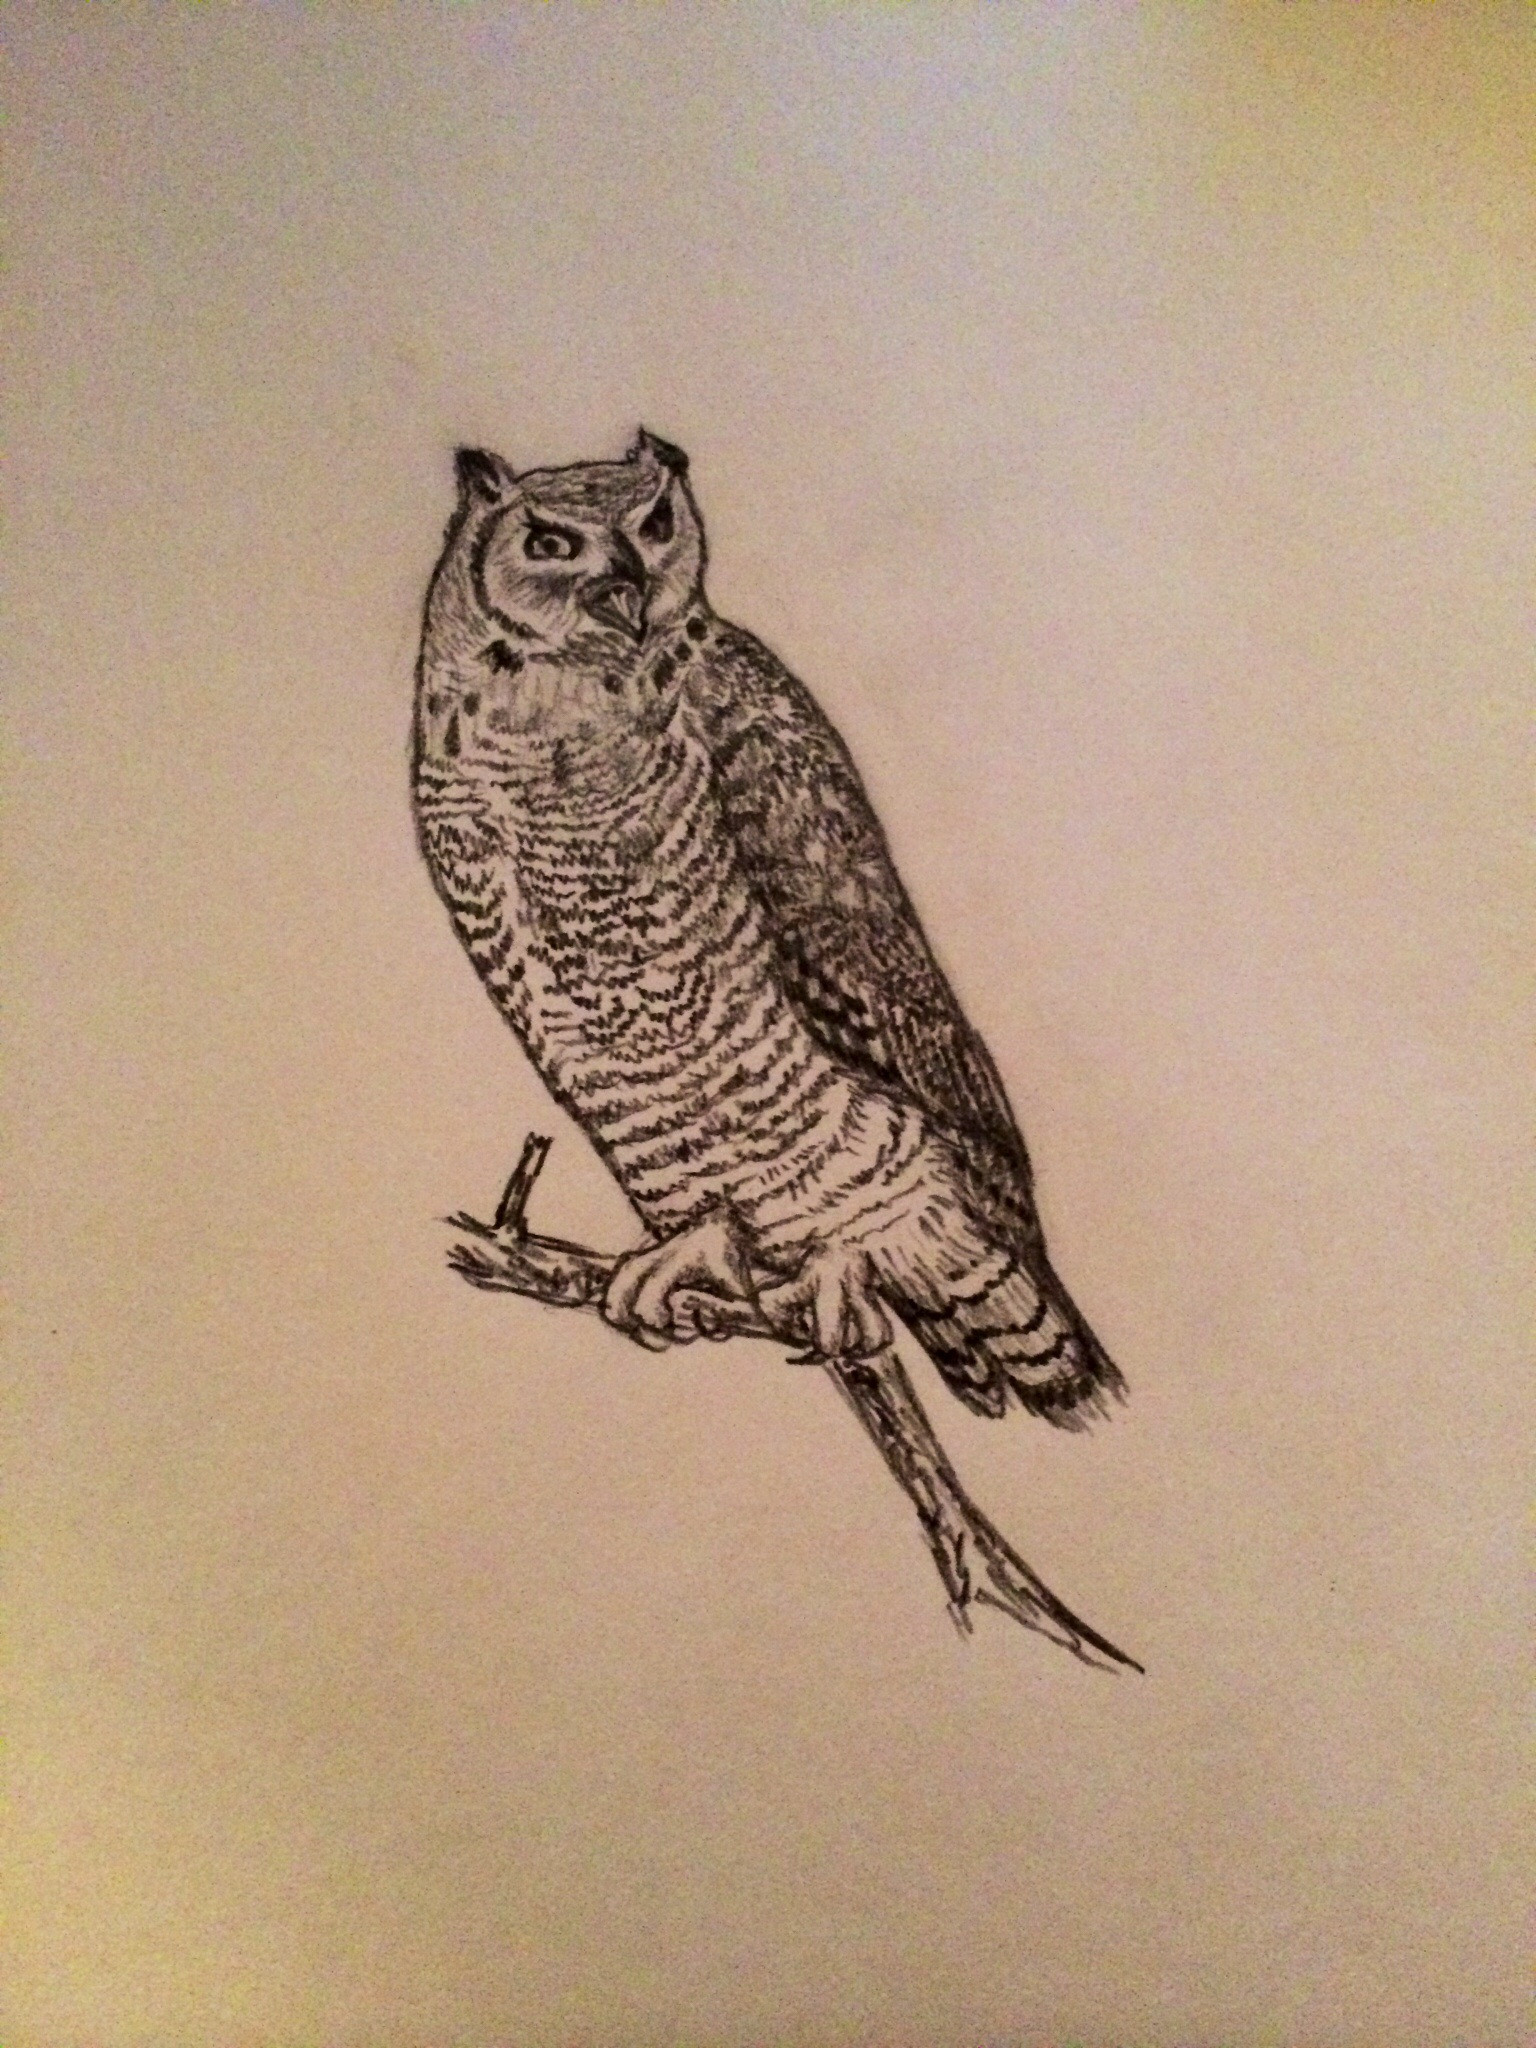 Drawn album cover owl Incorporated a digital 'thing' later